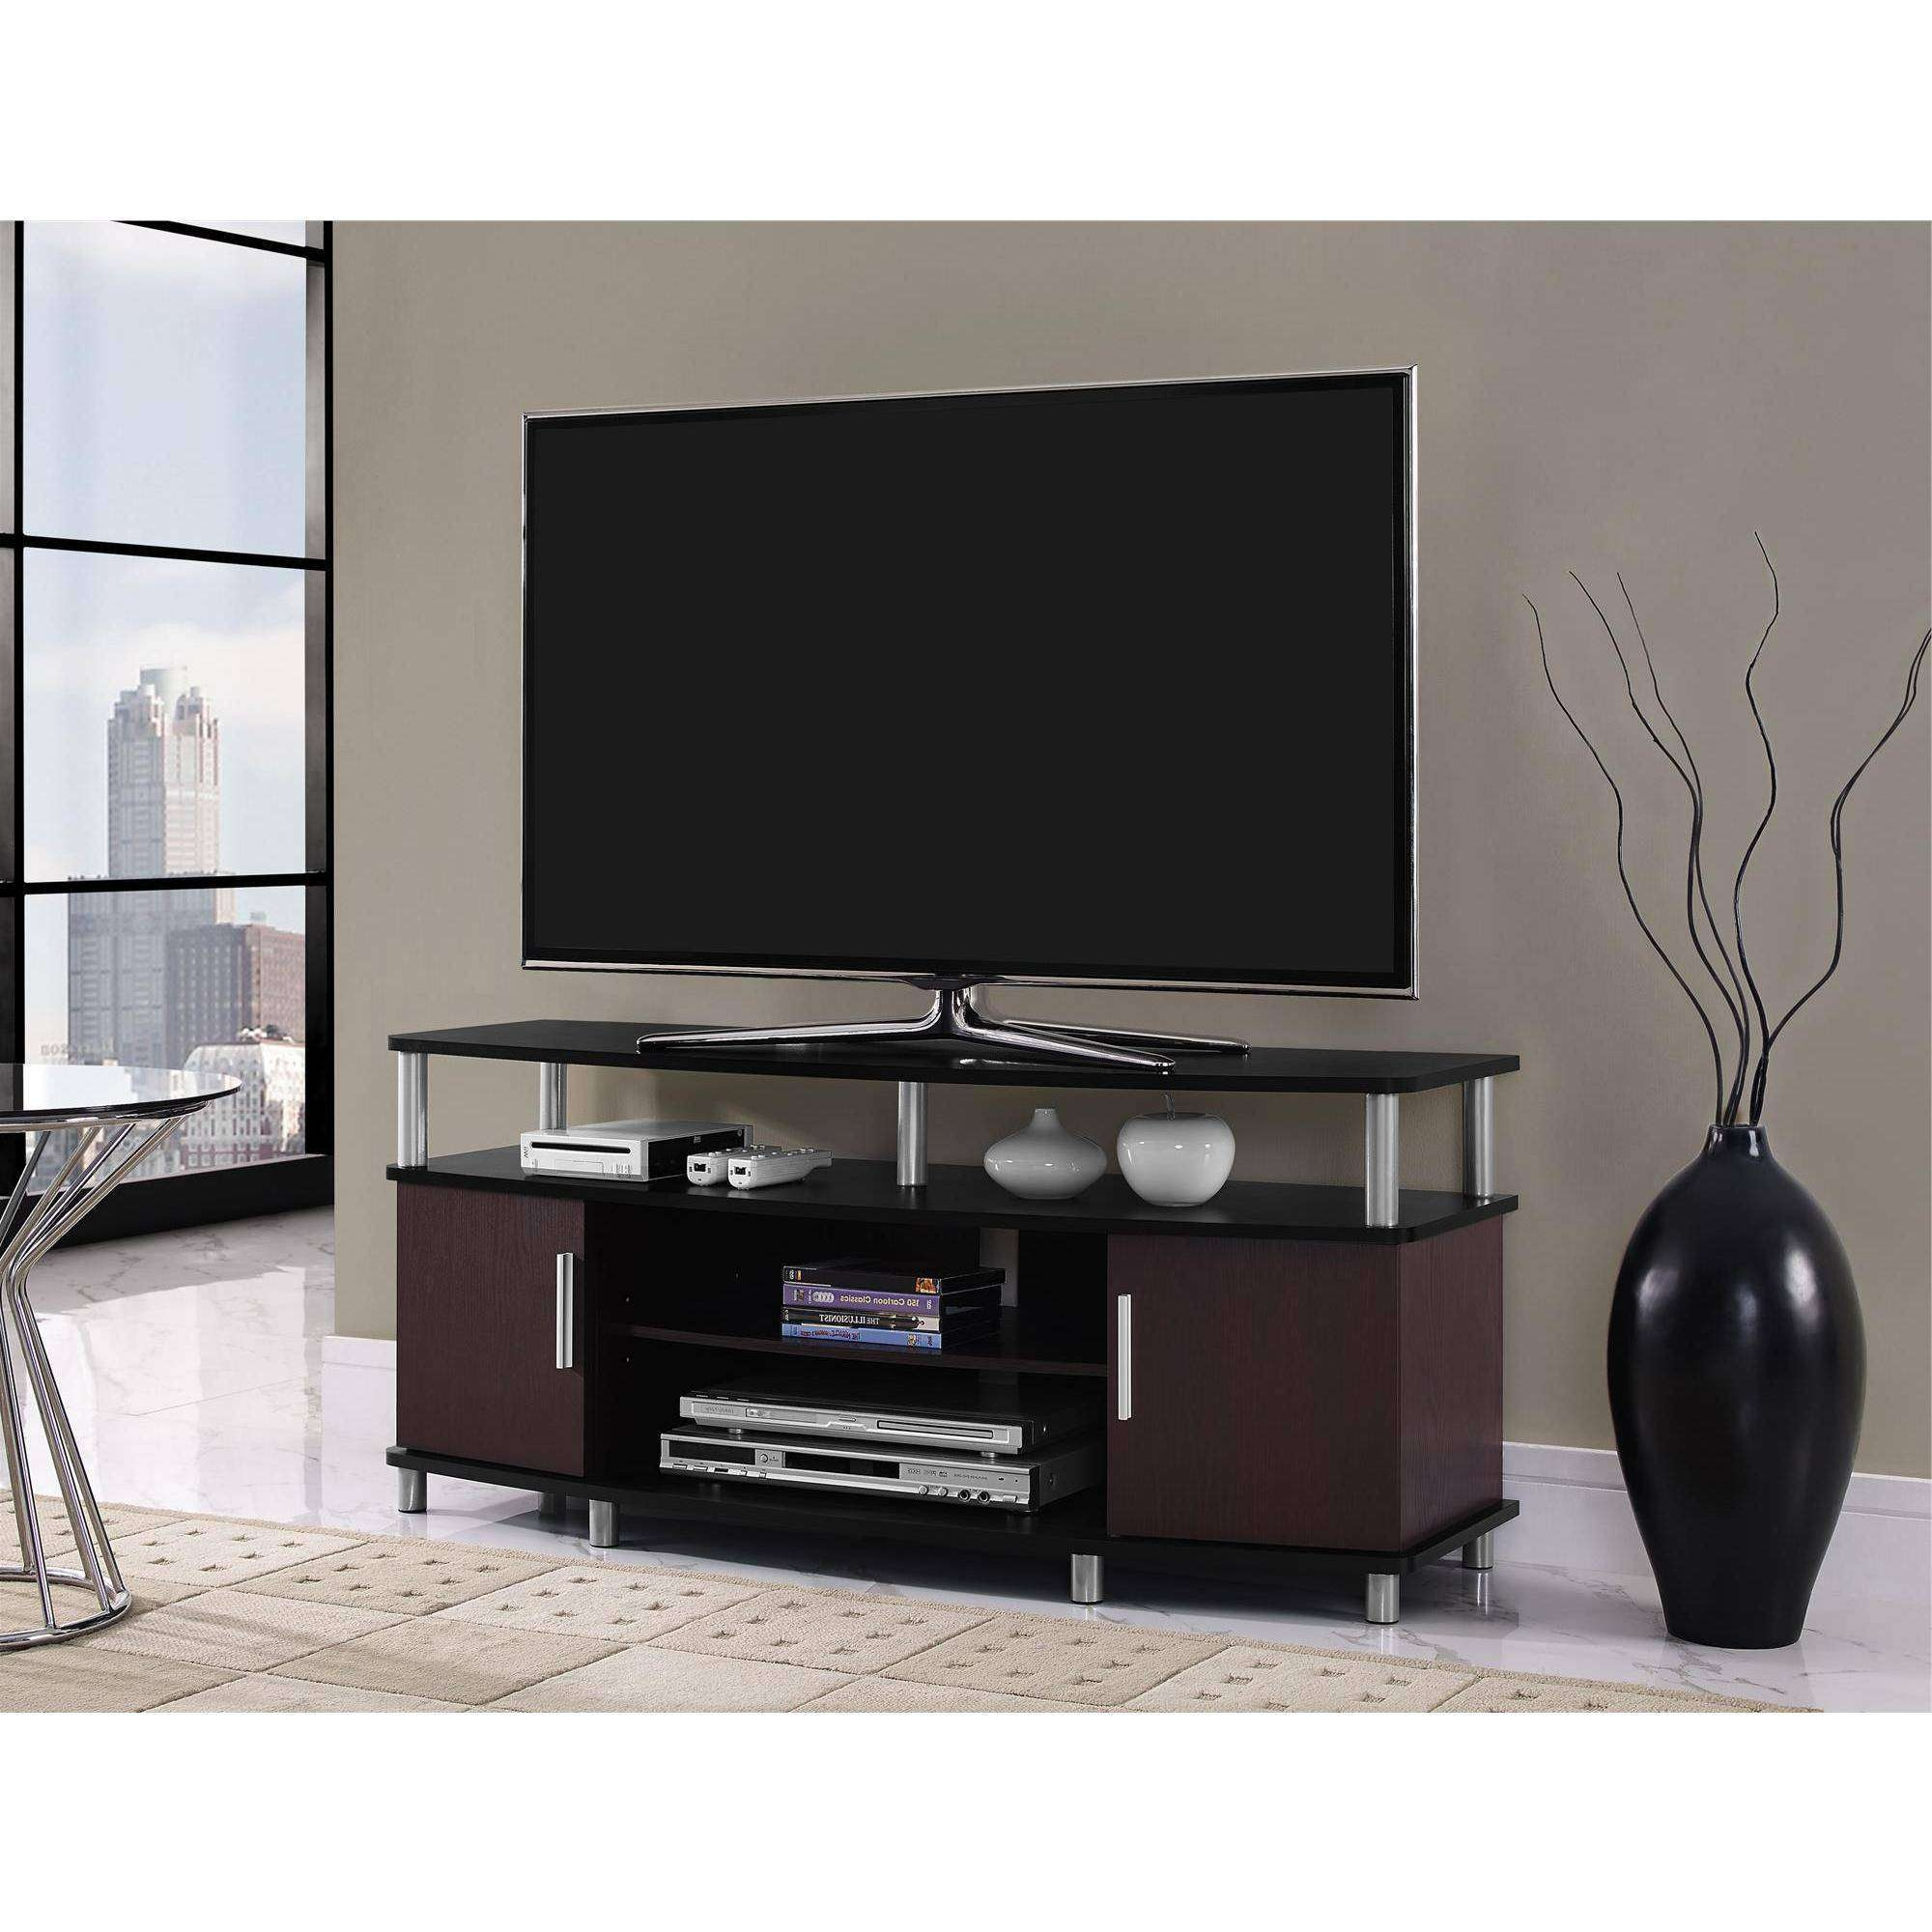 Tv Stands & Entertainment Centers – Walmart Inside Black Tv Stands With Drawers (View 11 of 15)